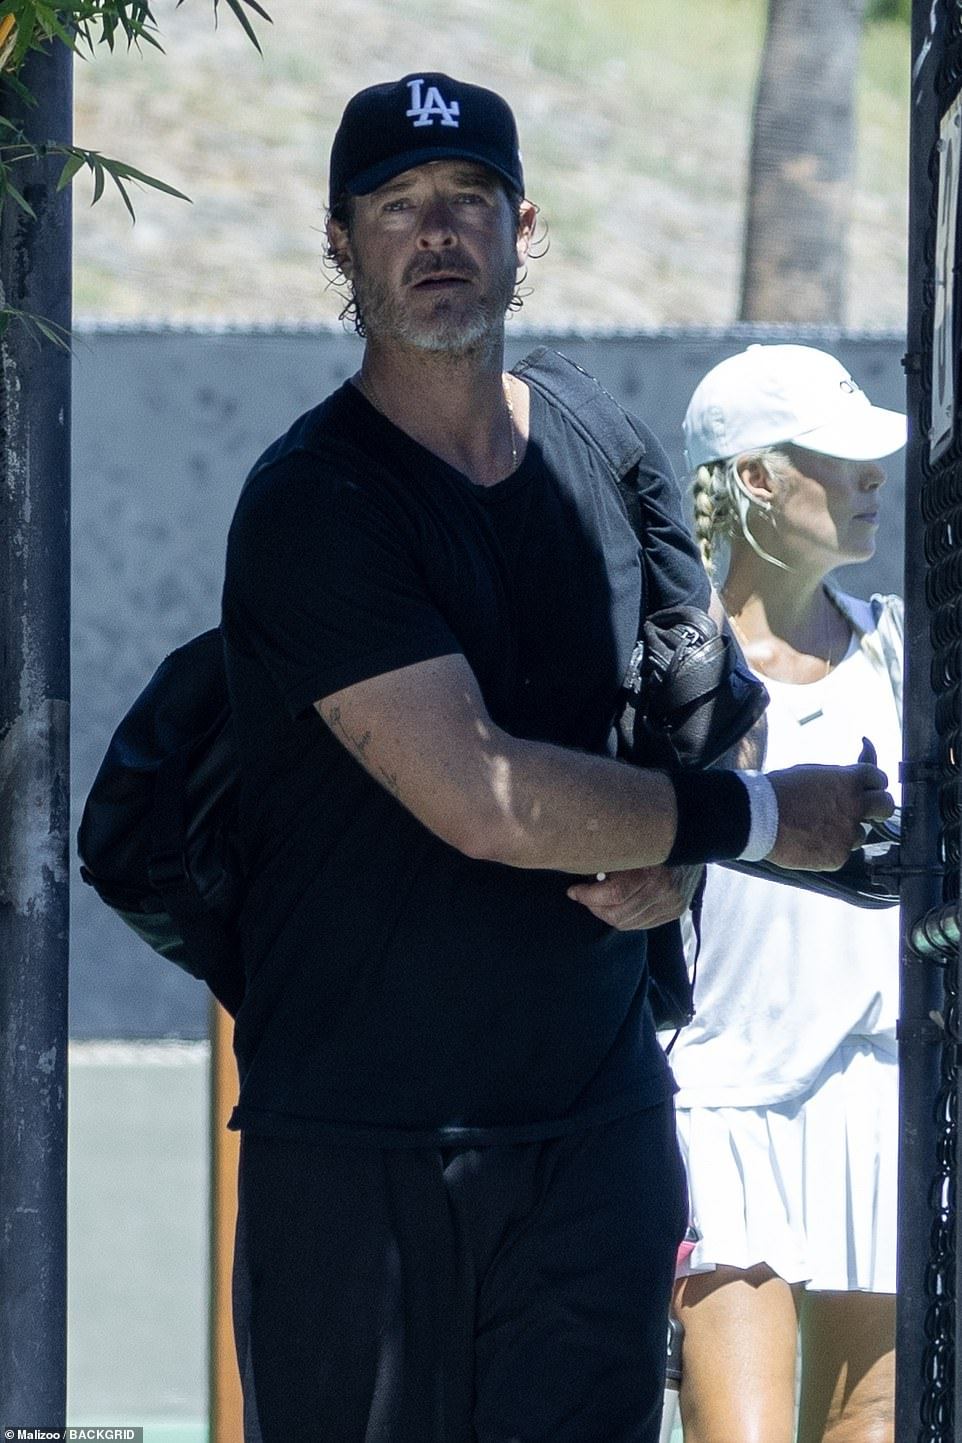 Robin Thicke, now 44, is seen in Malibu, Florida, on September 14 after playing a tennis match with a group of friends